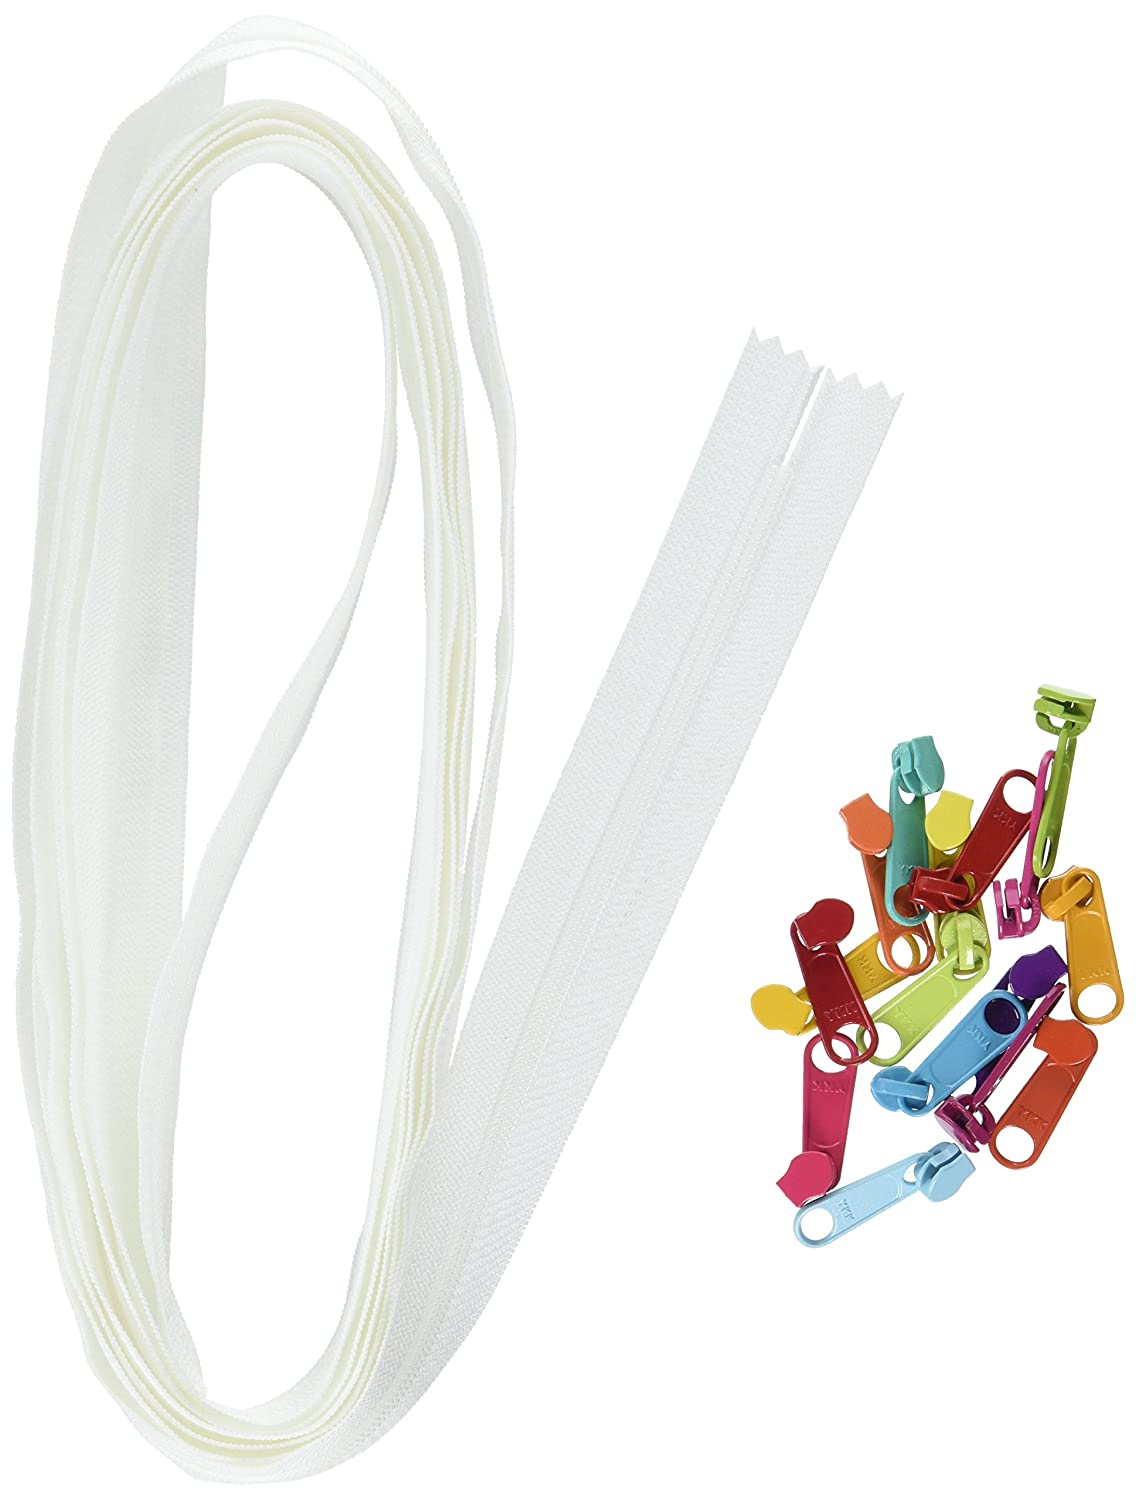 ByAnnie Zippers by Yard, White with Multicolored Pulls YKK ZIPYD-100-MULTI